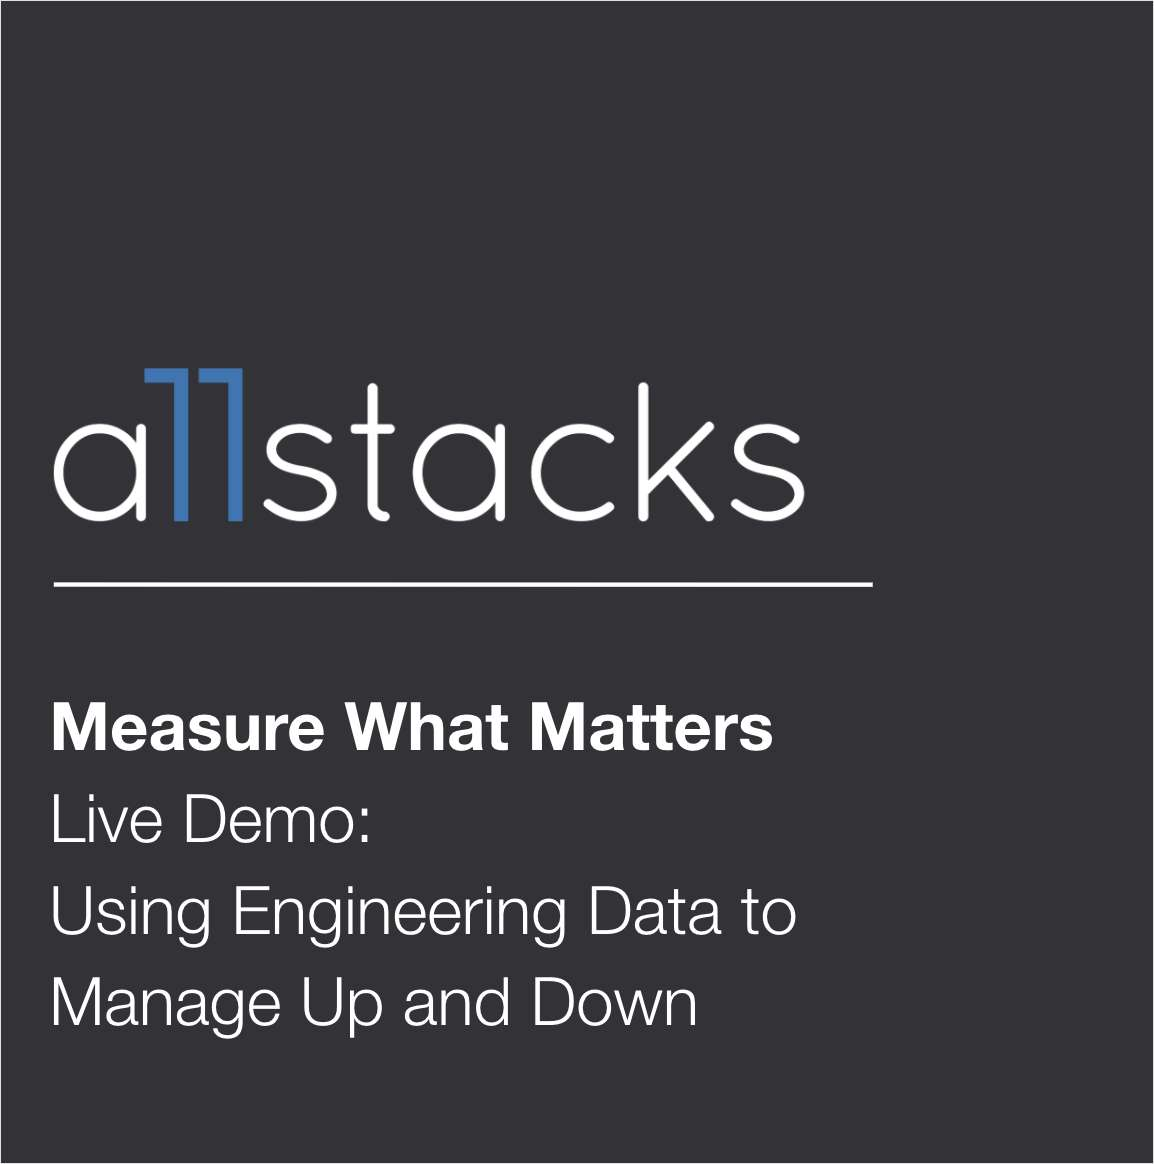 Demo: Using Engineering Data to Manage Up and Down